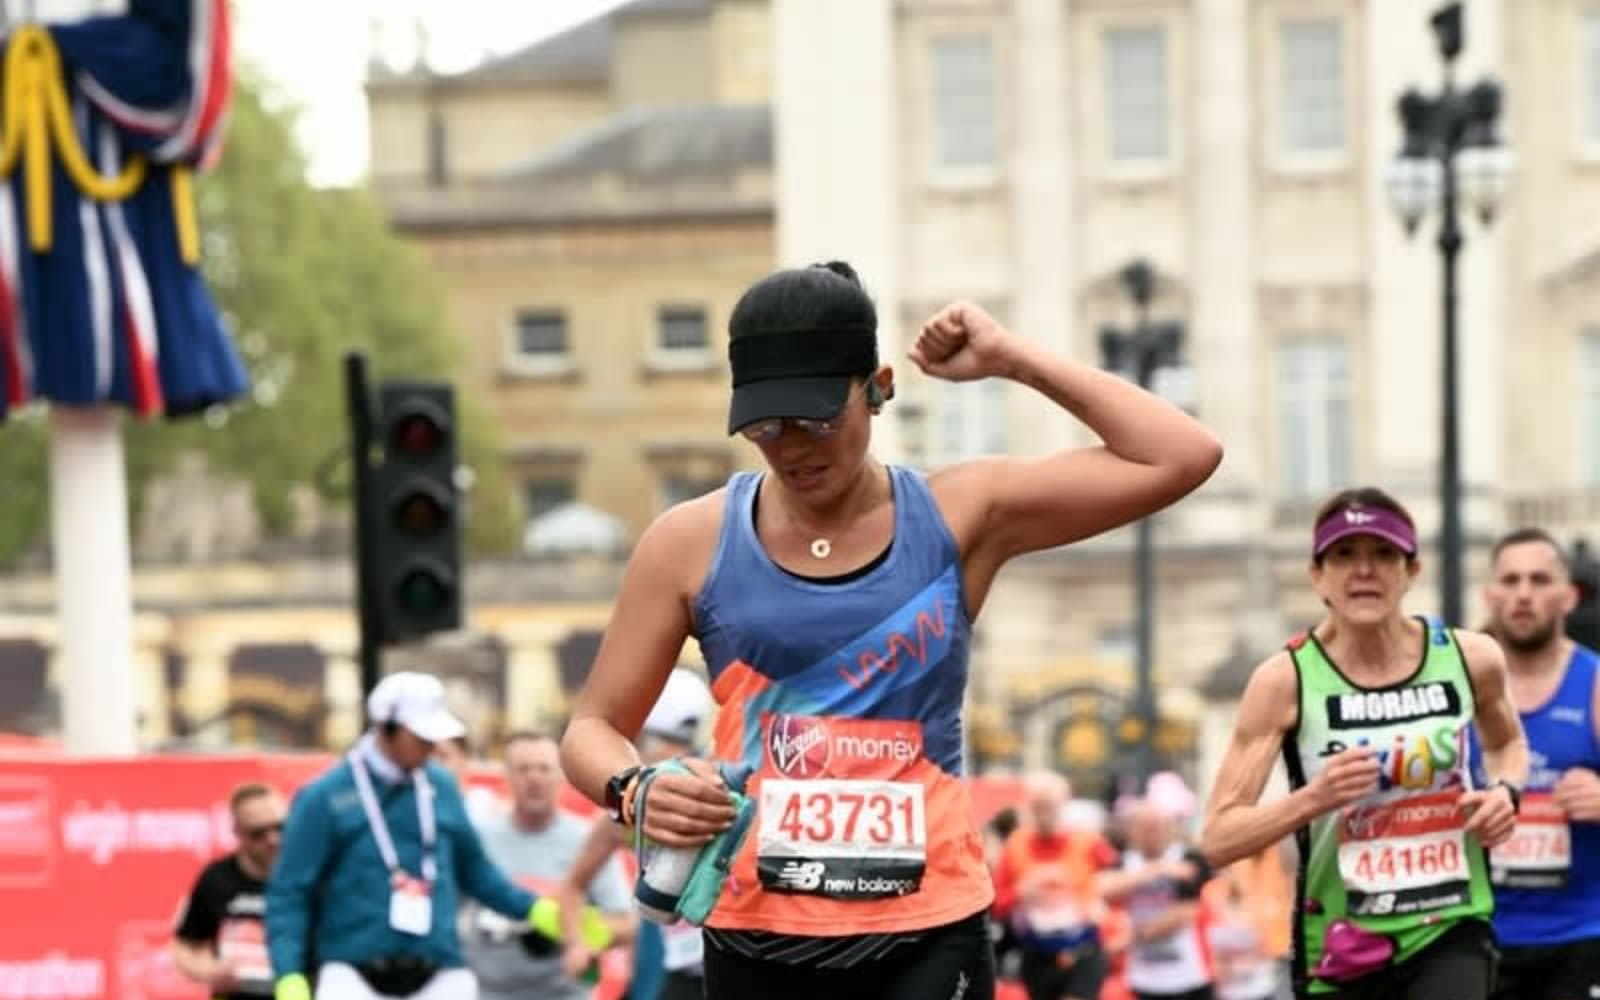 Lisa Kurdziel running at the London Marathon